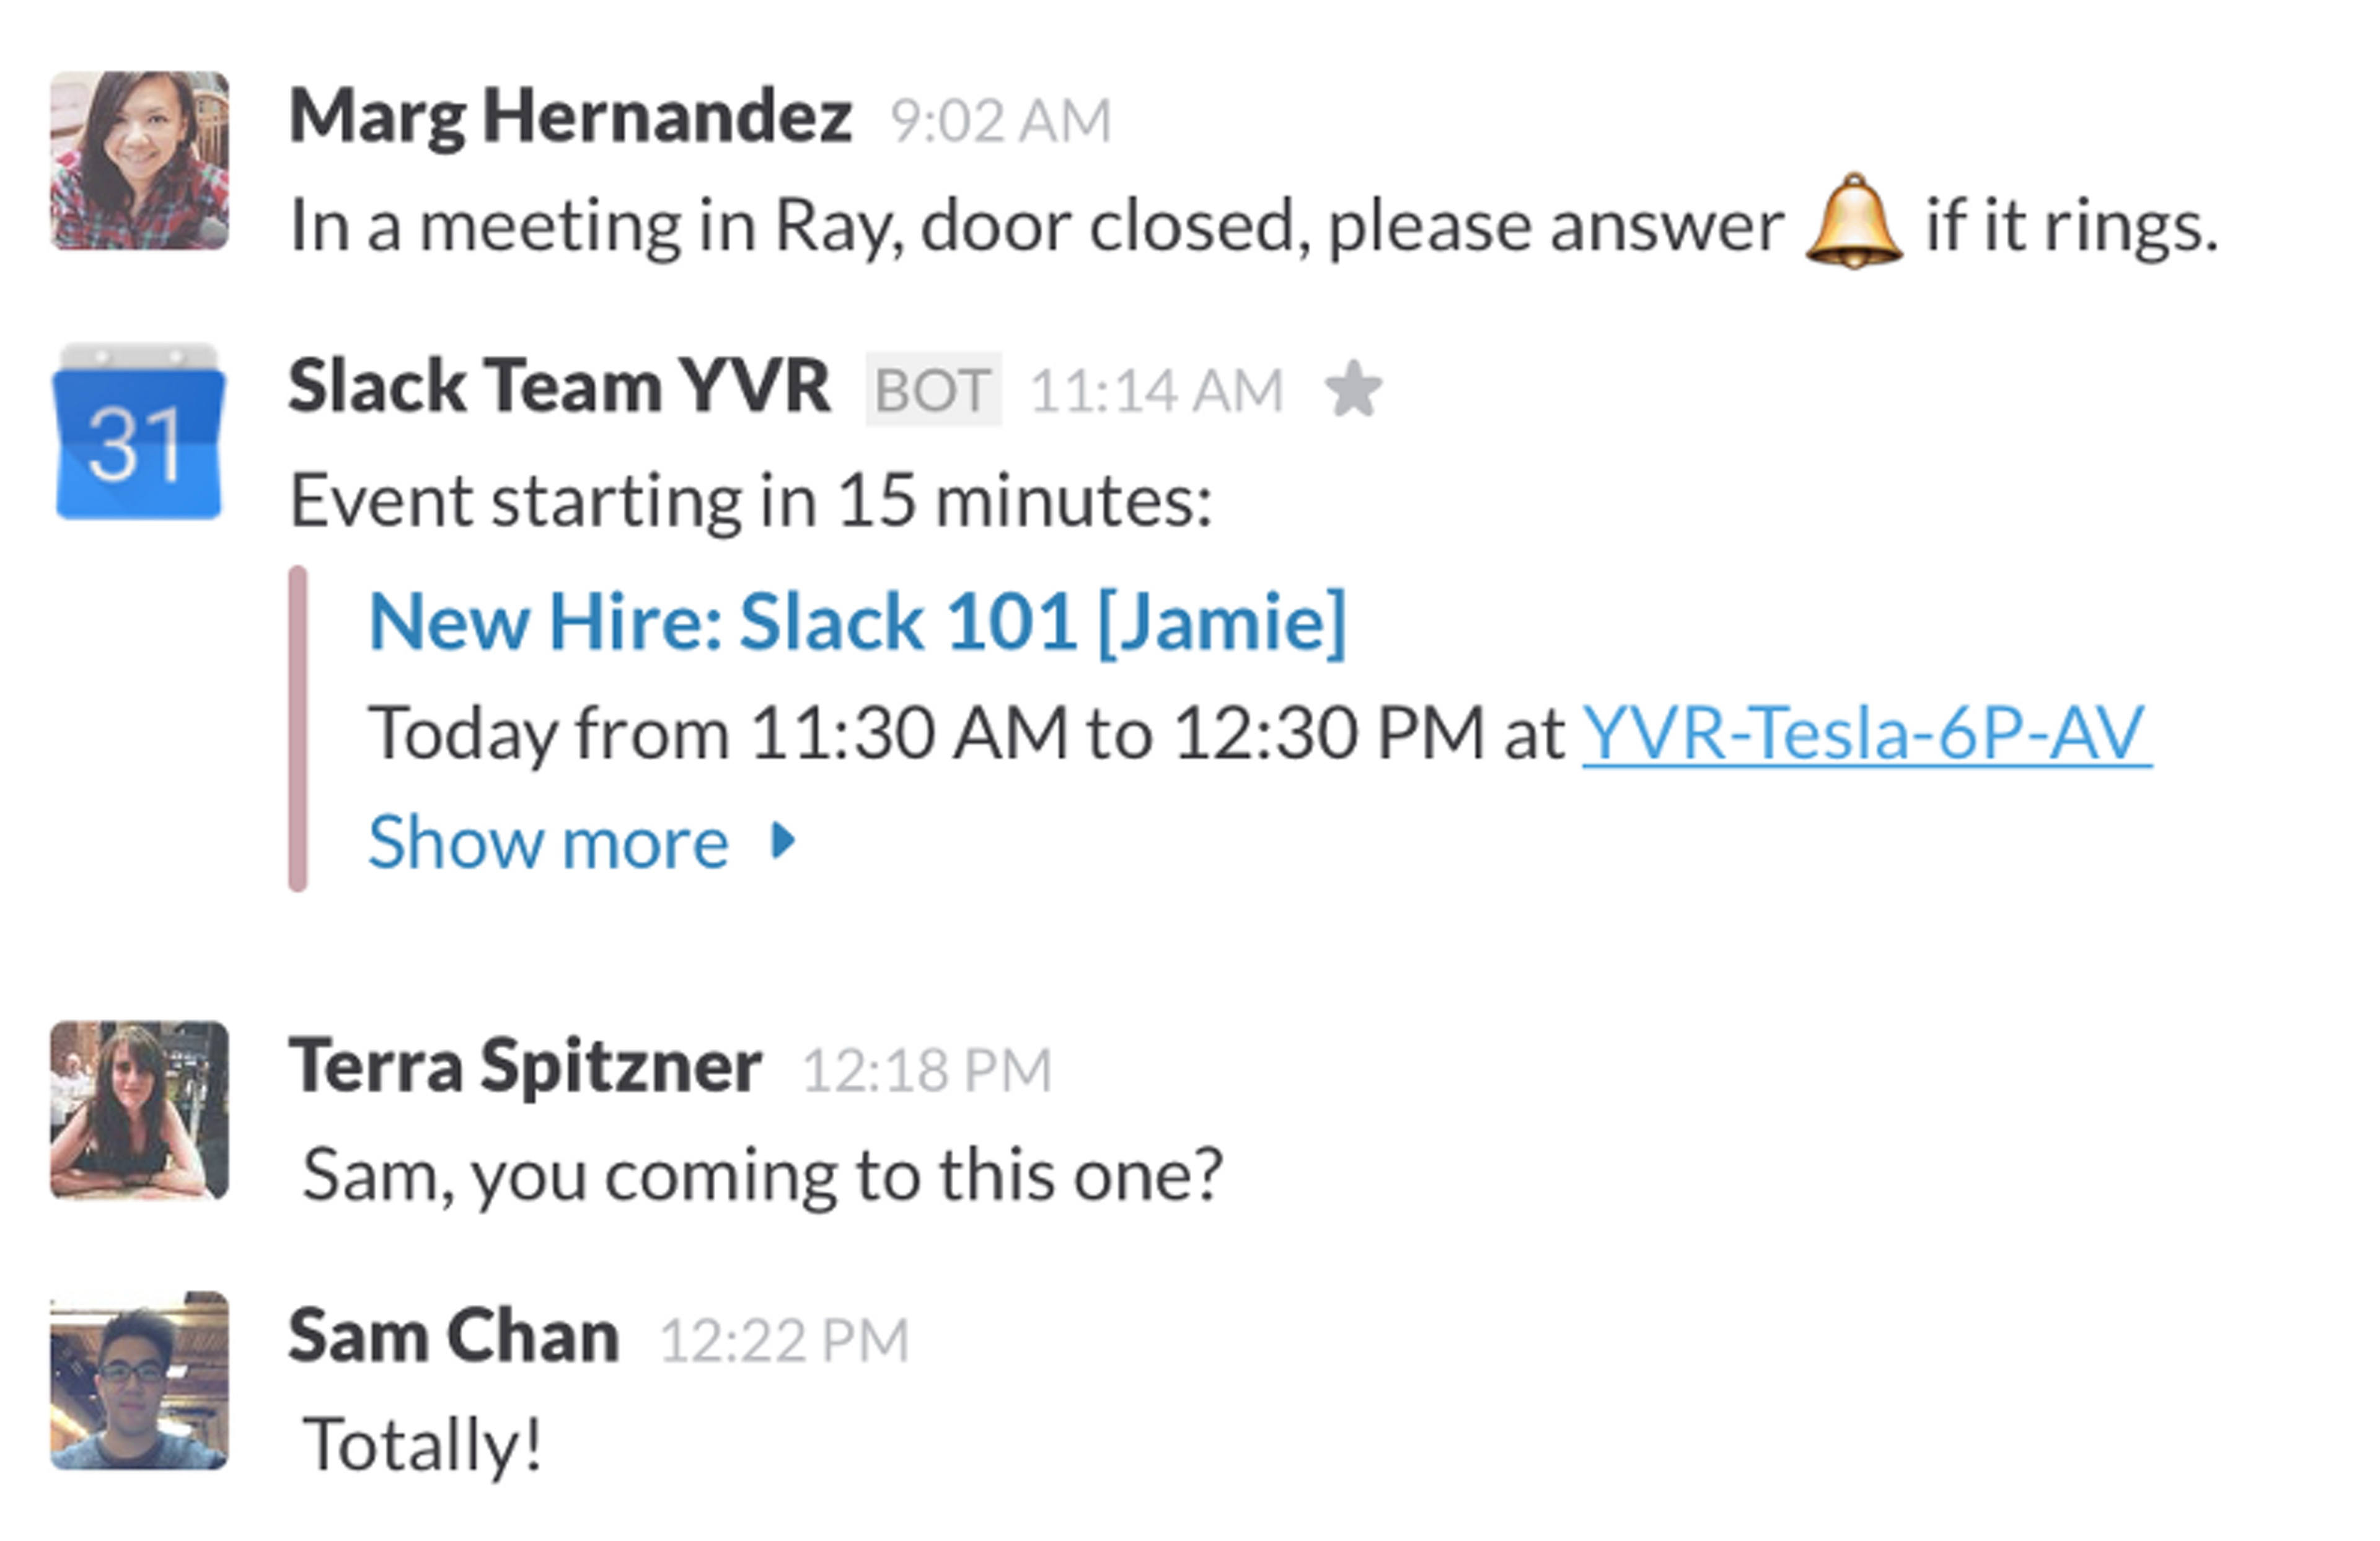 Example: The Google calendar integration in Slack notifies a channel about an upcoming meeting.